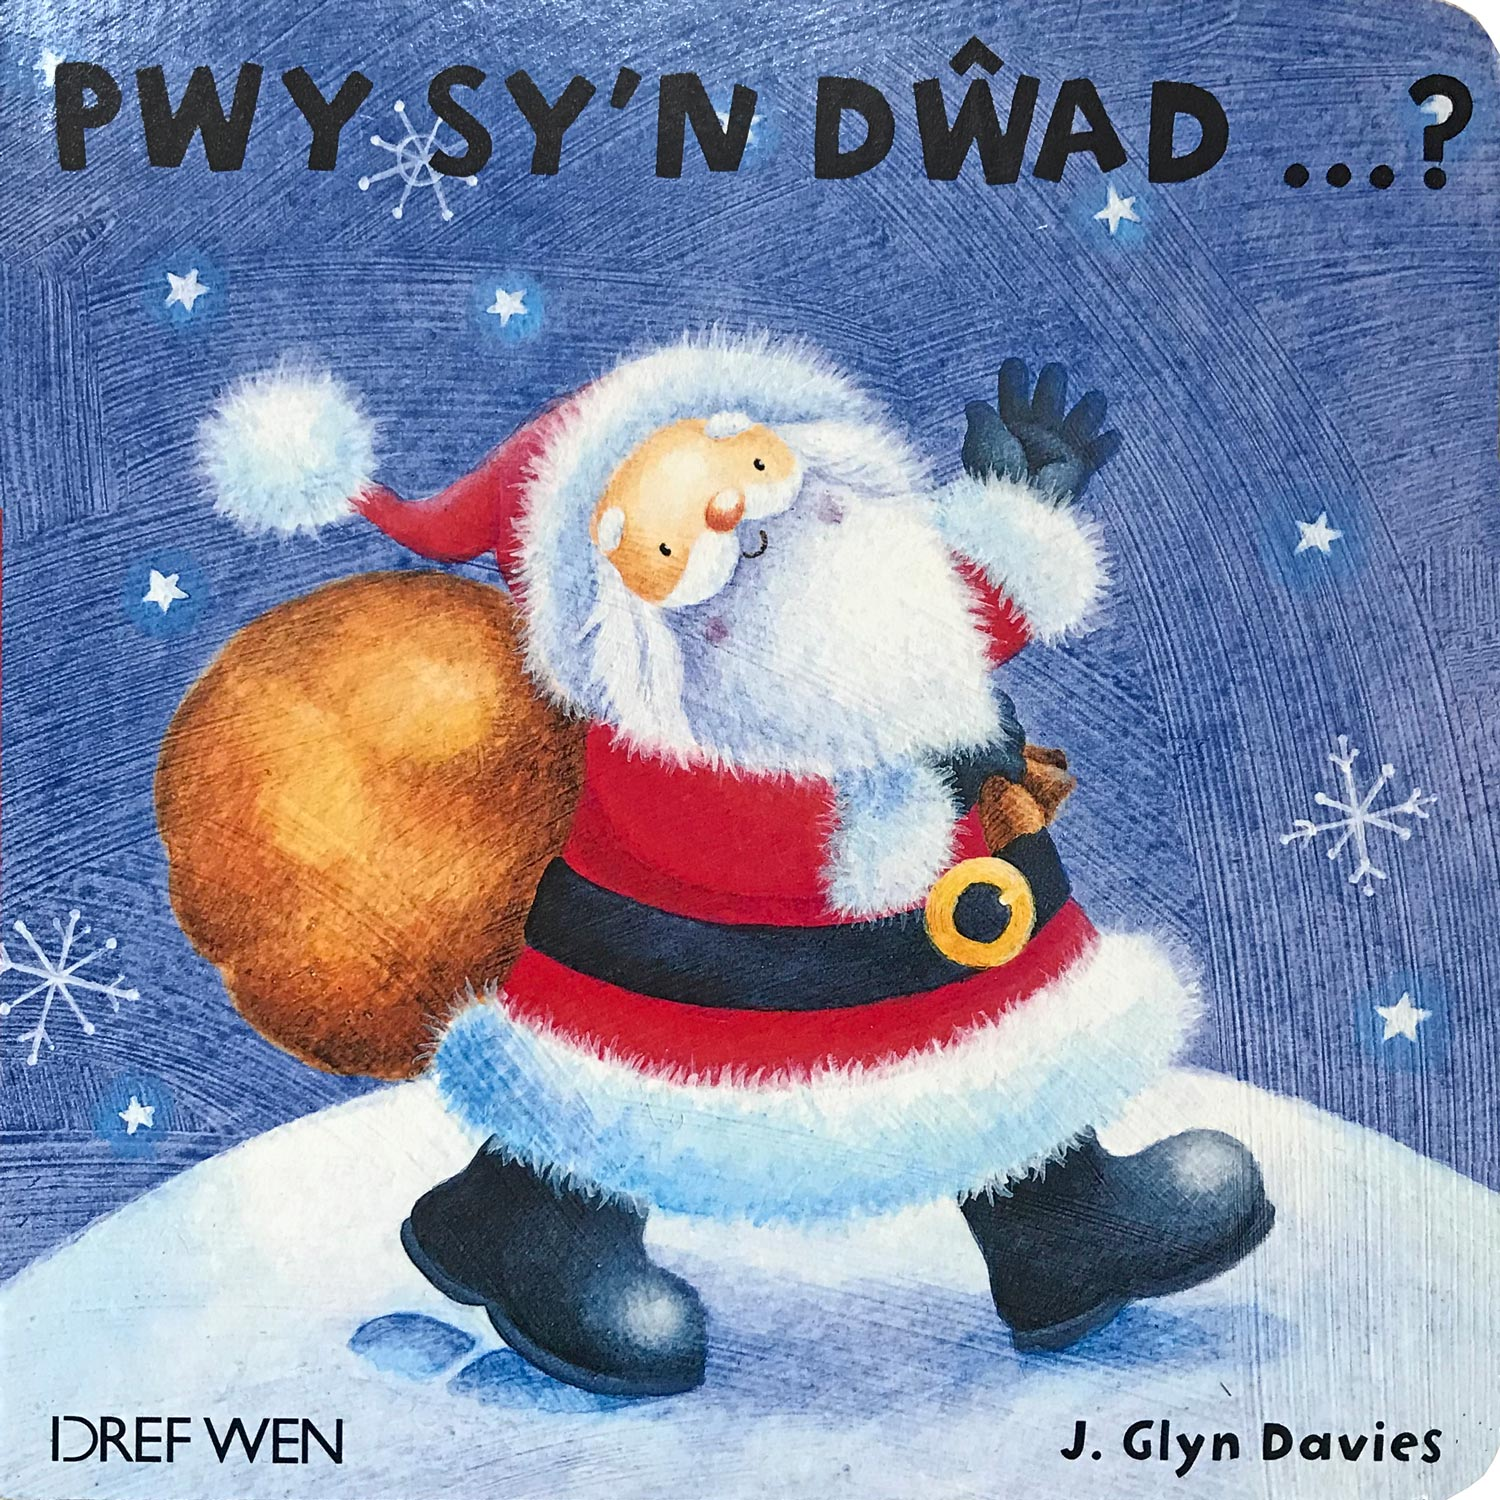 Pwy sy'n dwad... Sion Corn! Welsh Christmas Song Book